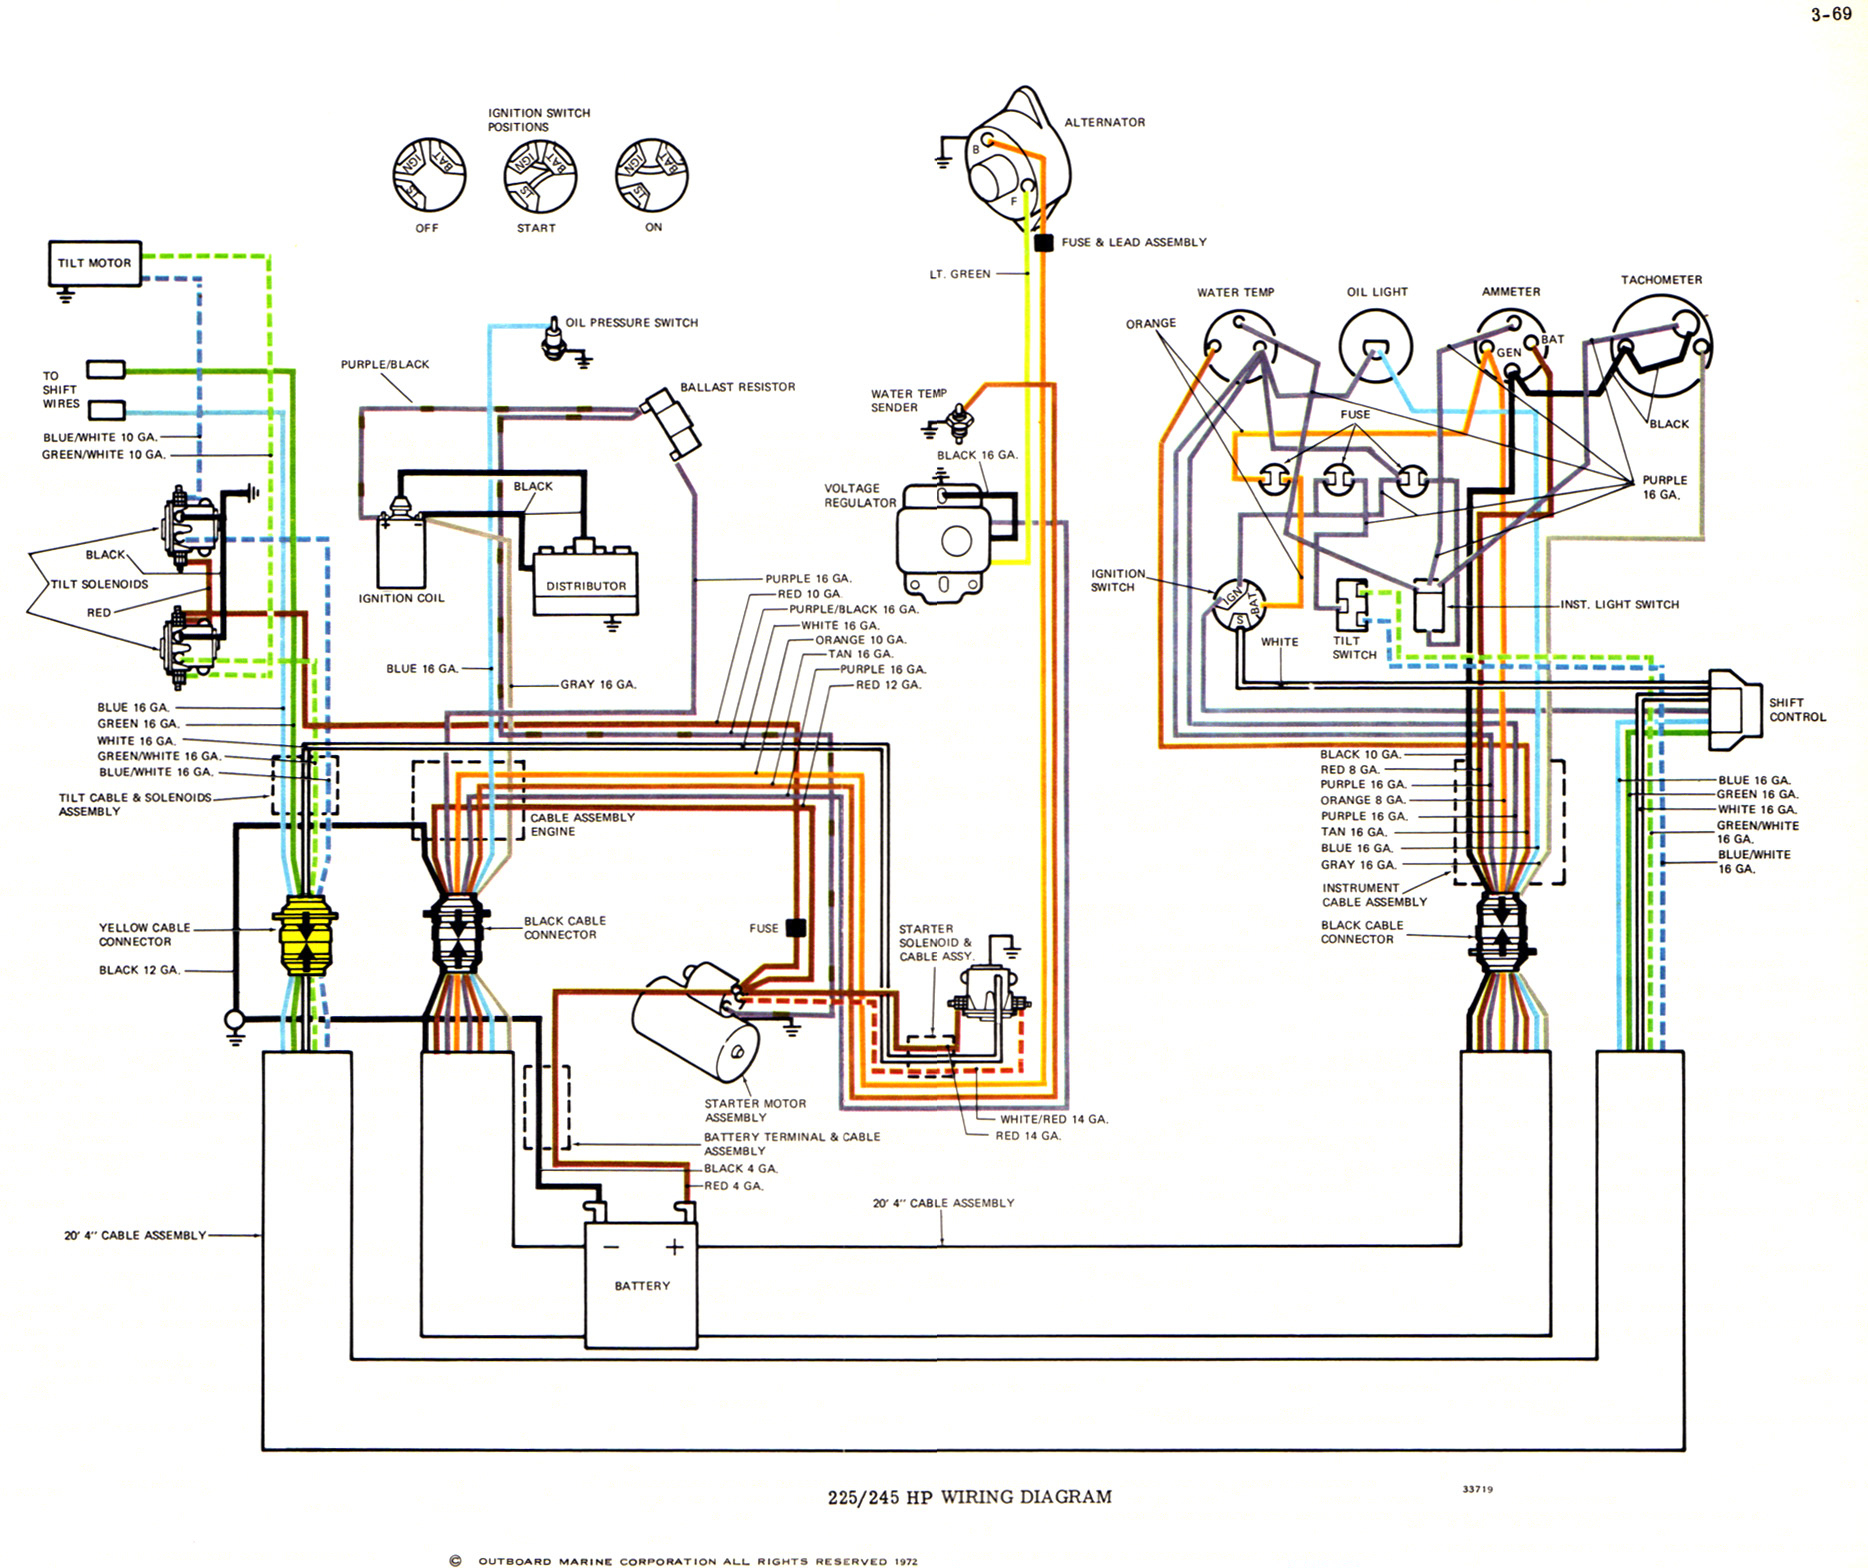 Suzuki Outboard Wiring Diagrams Seniorsclub It Cable Field Cable Field Seniorsclub It